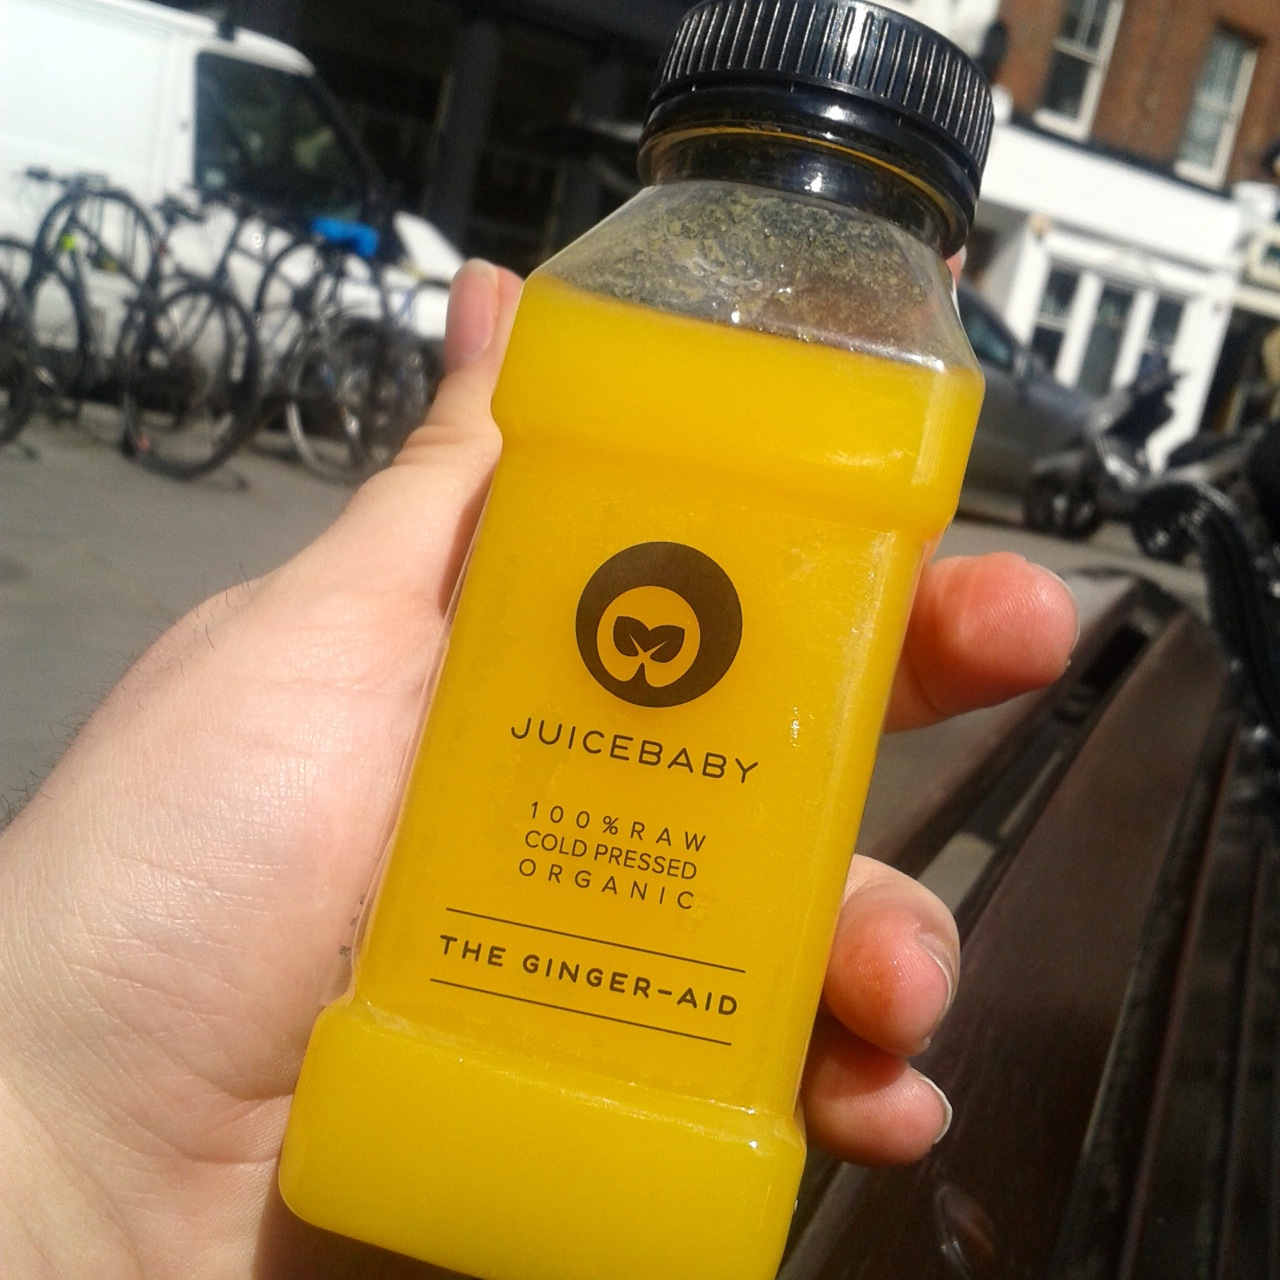 http://i1.wp.com/fatgayvegan.com/wp-content/uploads/2015/04/the-ginger-aid-Juice-Baby.jpg?fit=1280%2C1280